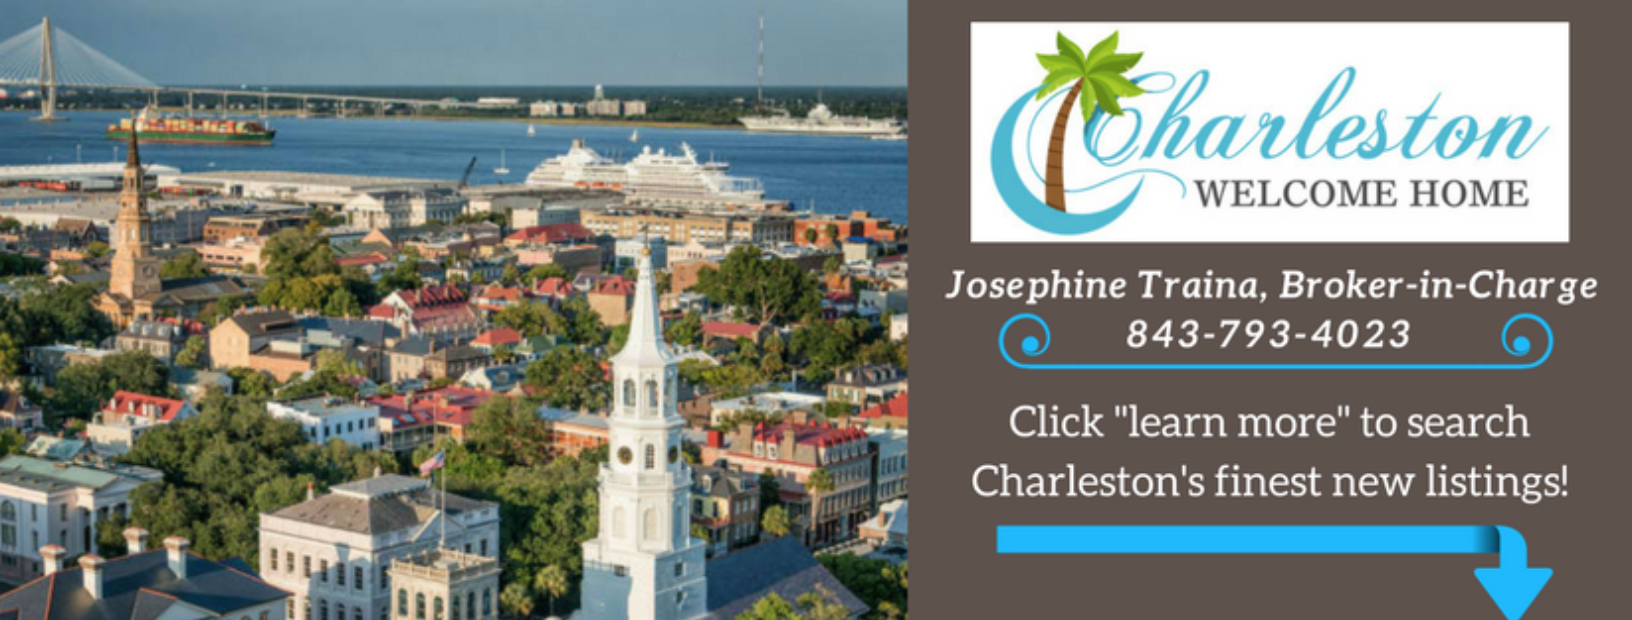 Charleston Welcome Home Real Estate - real estate cover photos - tips from the pros